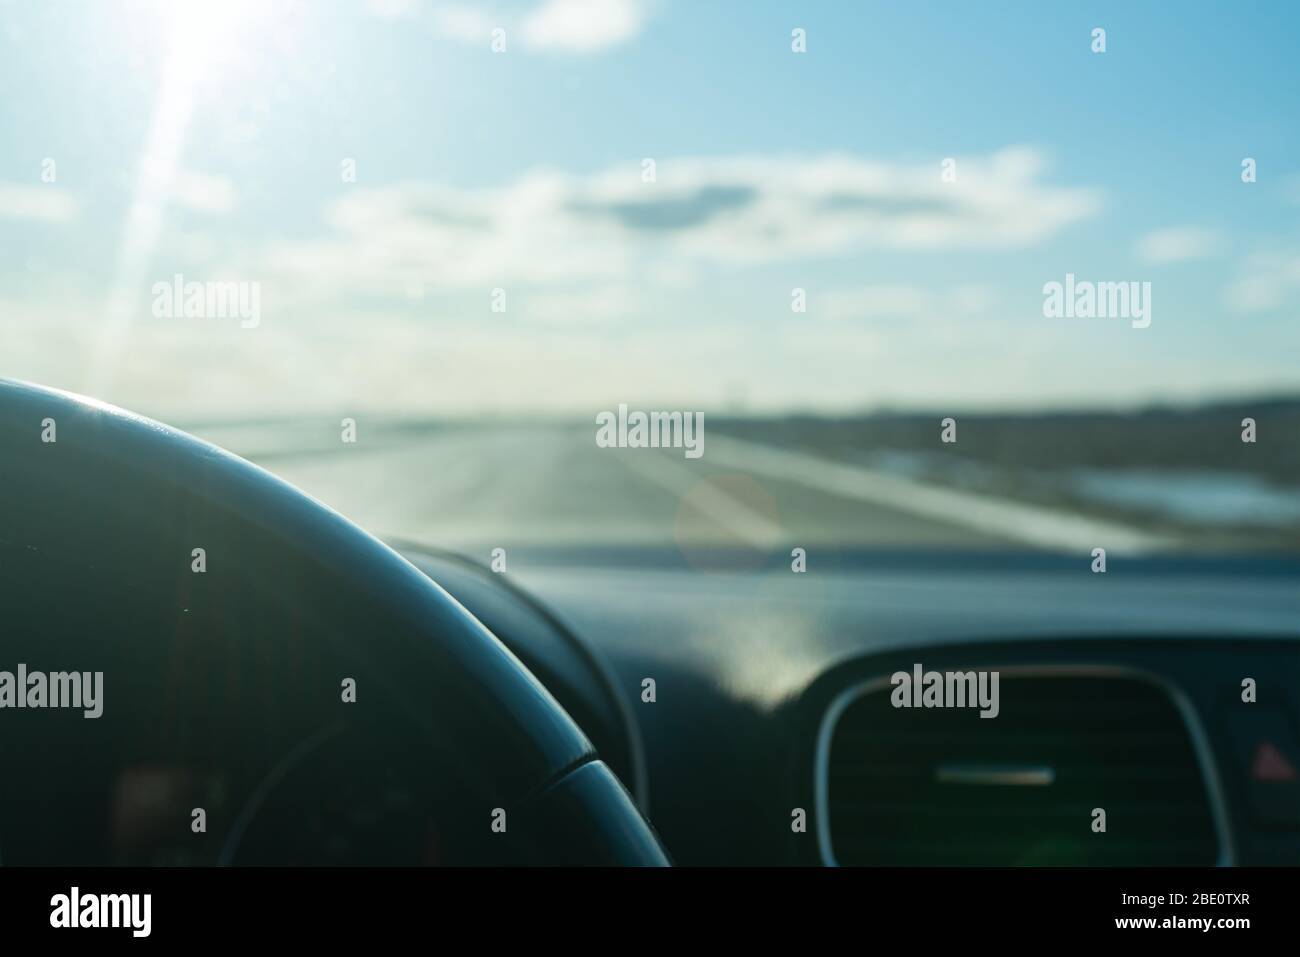 View from inside the moving car on the road, Blue sky. transportation concept. Lels flare. Selective focus. Stock Photo